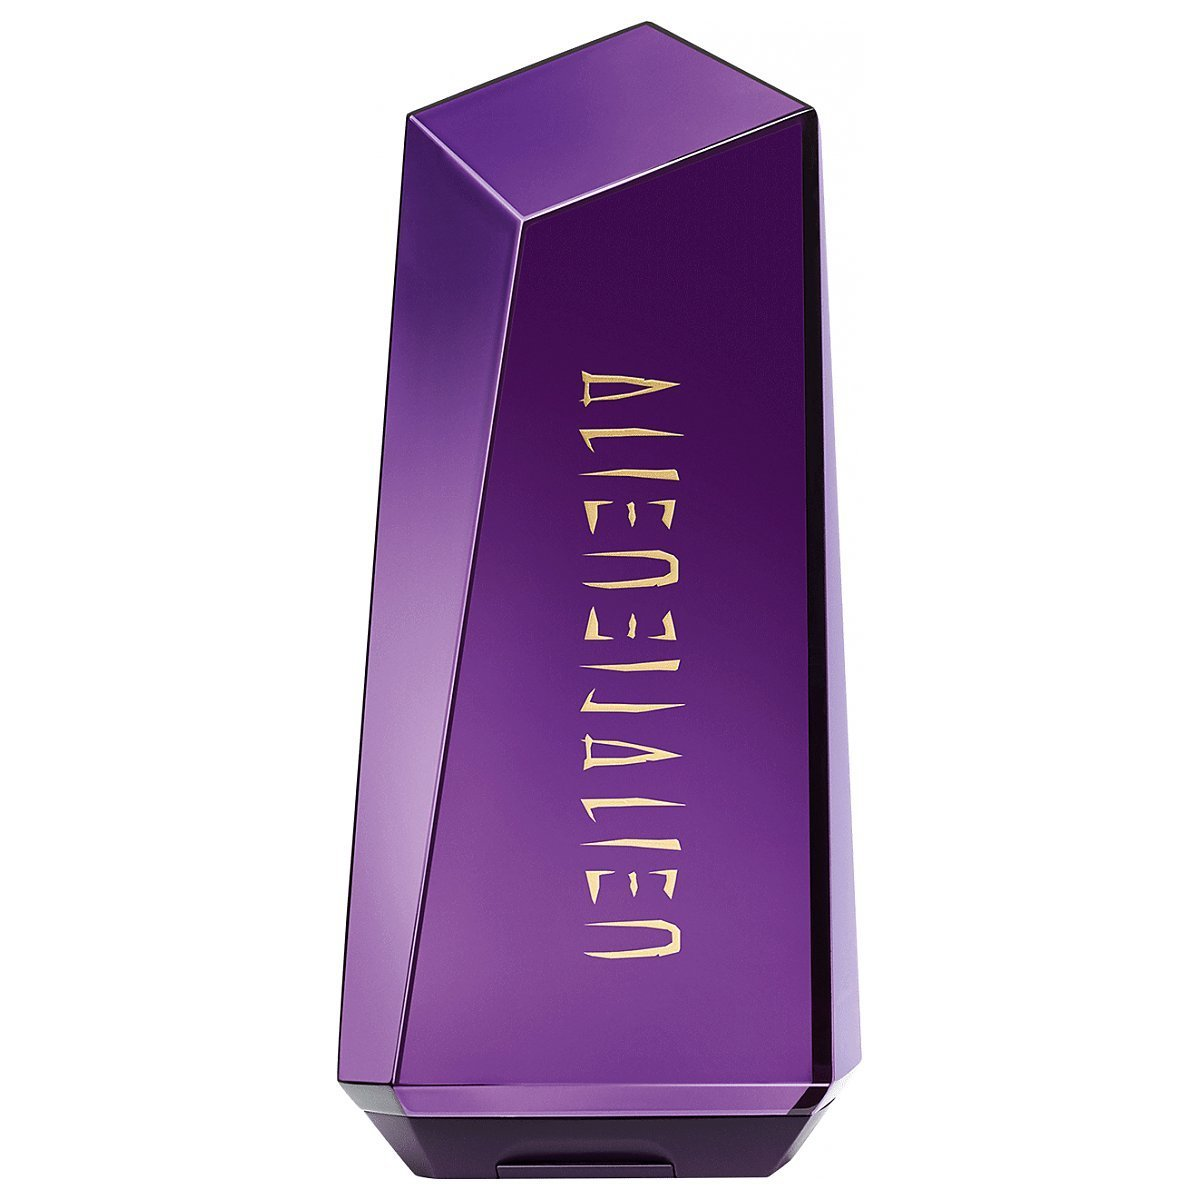 thierry mugler alien radiant body lotion perfumowany. Black Bedroom Furniture Sets. Home Design Ideas